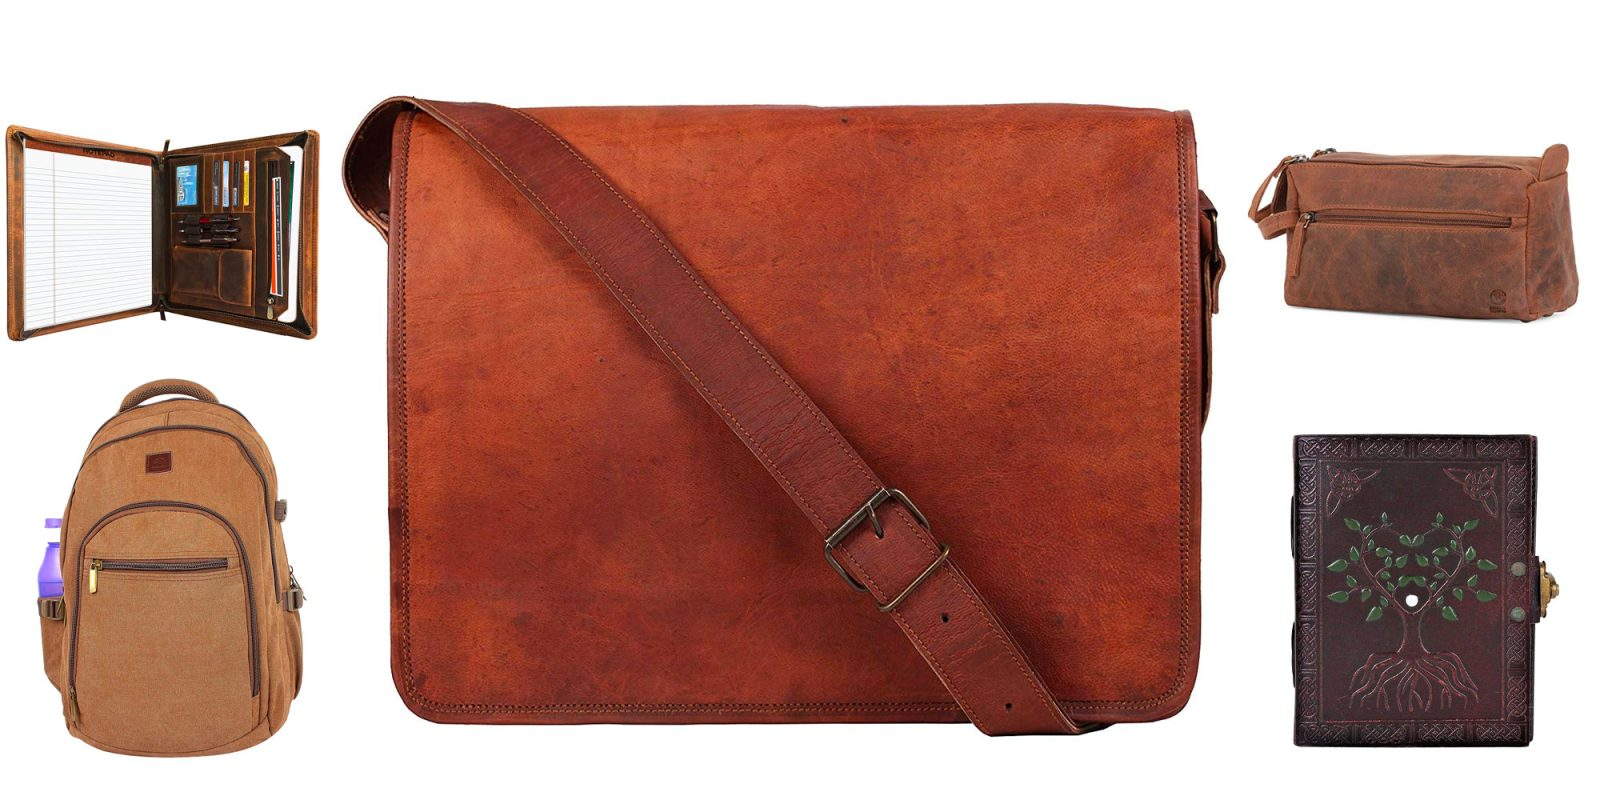 RusticTown's genuine leather bags, notepads, and more starting at $12